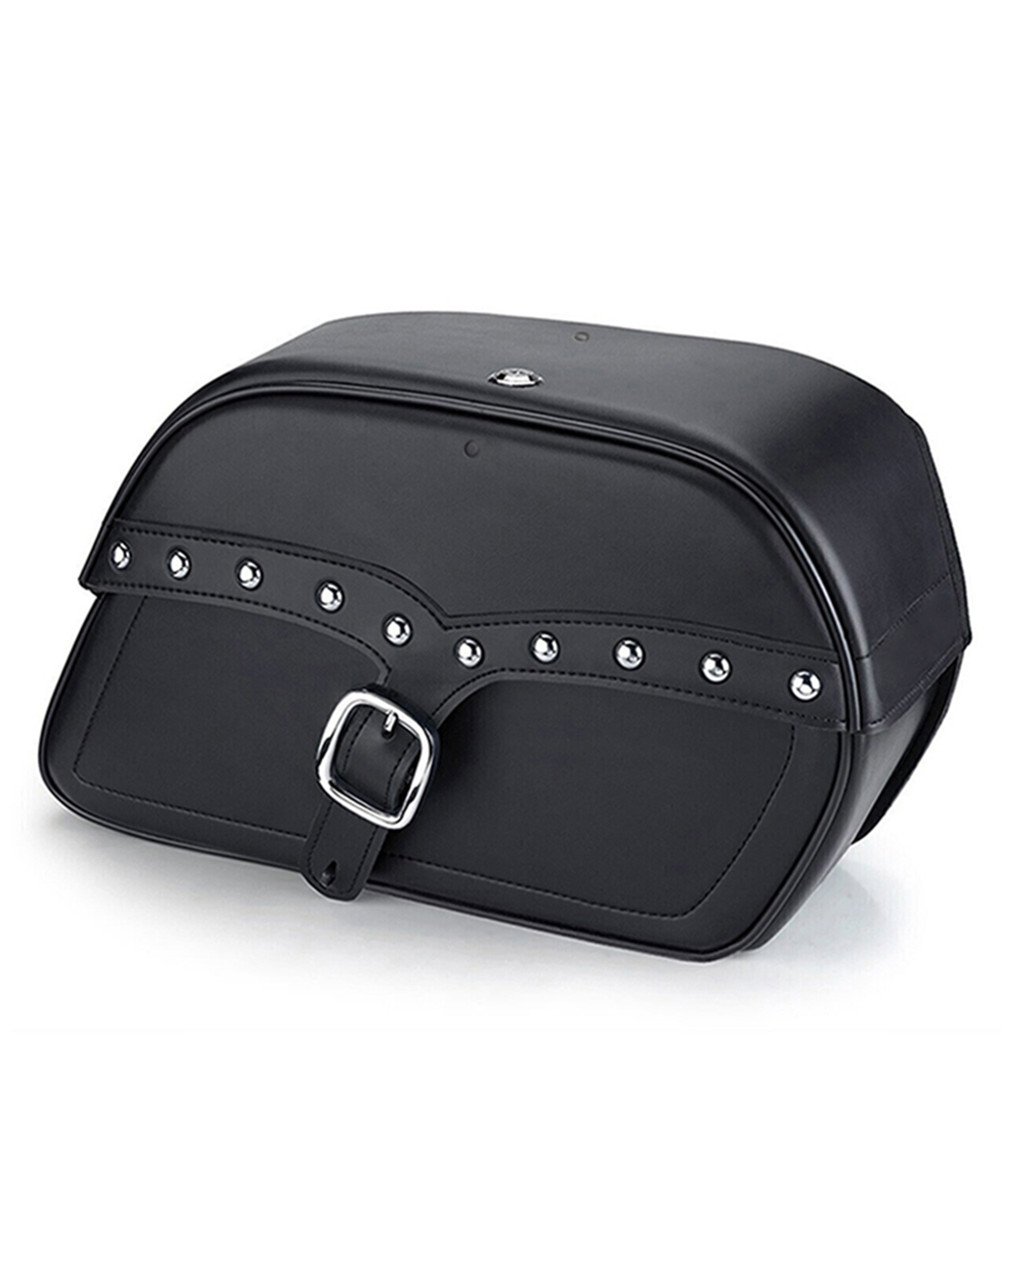 Viking Shock Cutout SS Slanted Studded Large Motorcycle Saddlebags For Harley Dyna Low Rider FXDL Main Bag View